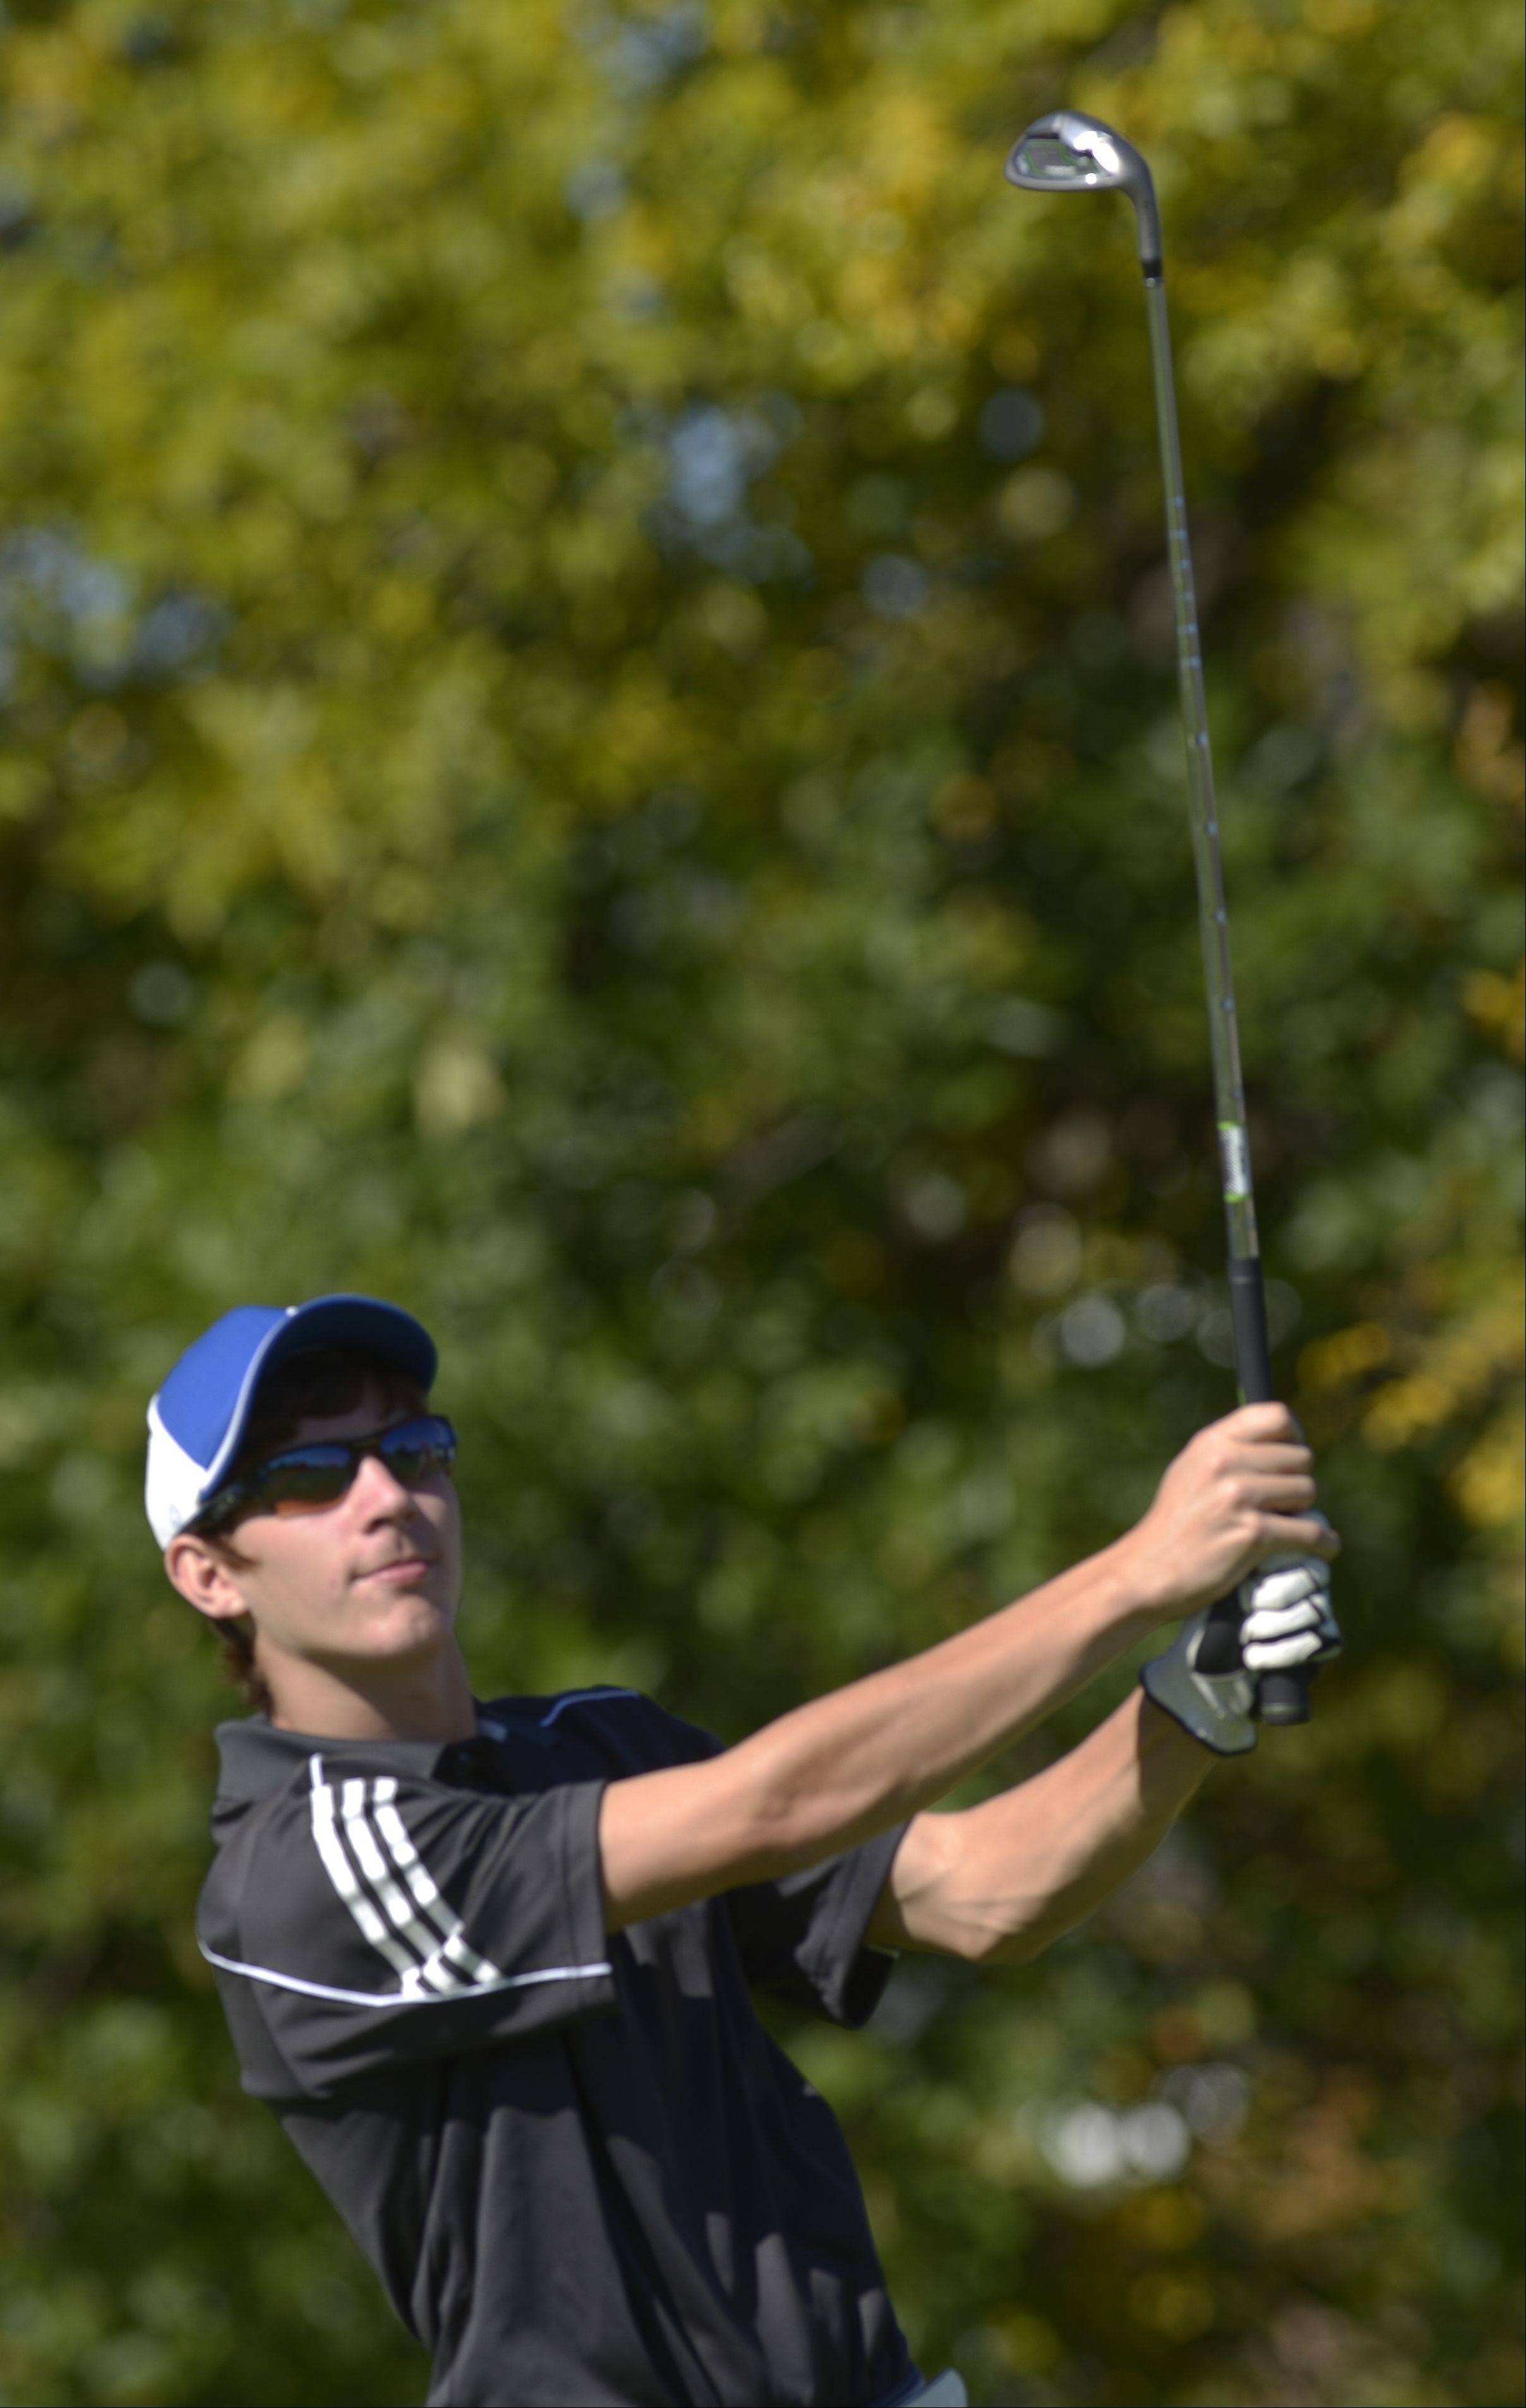 Mike Fratto of Willowbrook tees off during the Class 3A York regional boys golf at Maple Meadows Golf Course in Wood Dale, Tuesday.